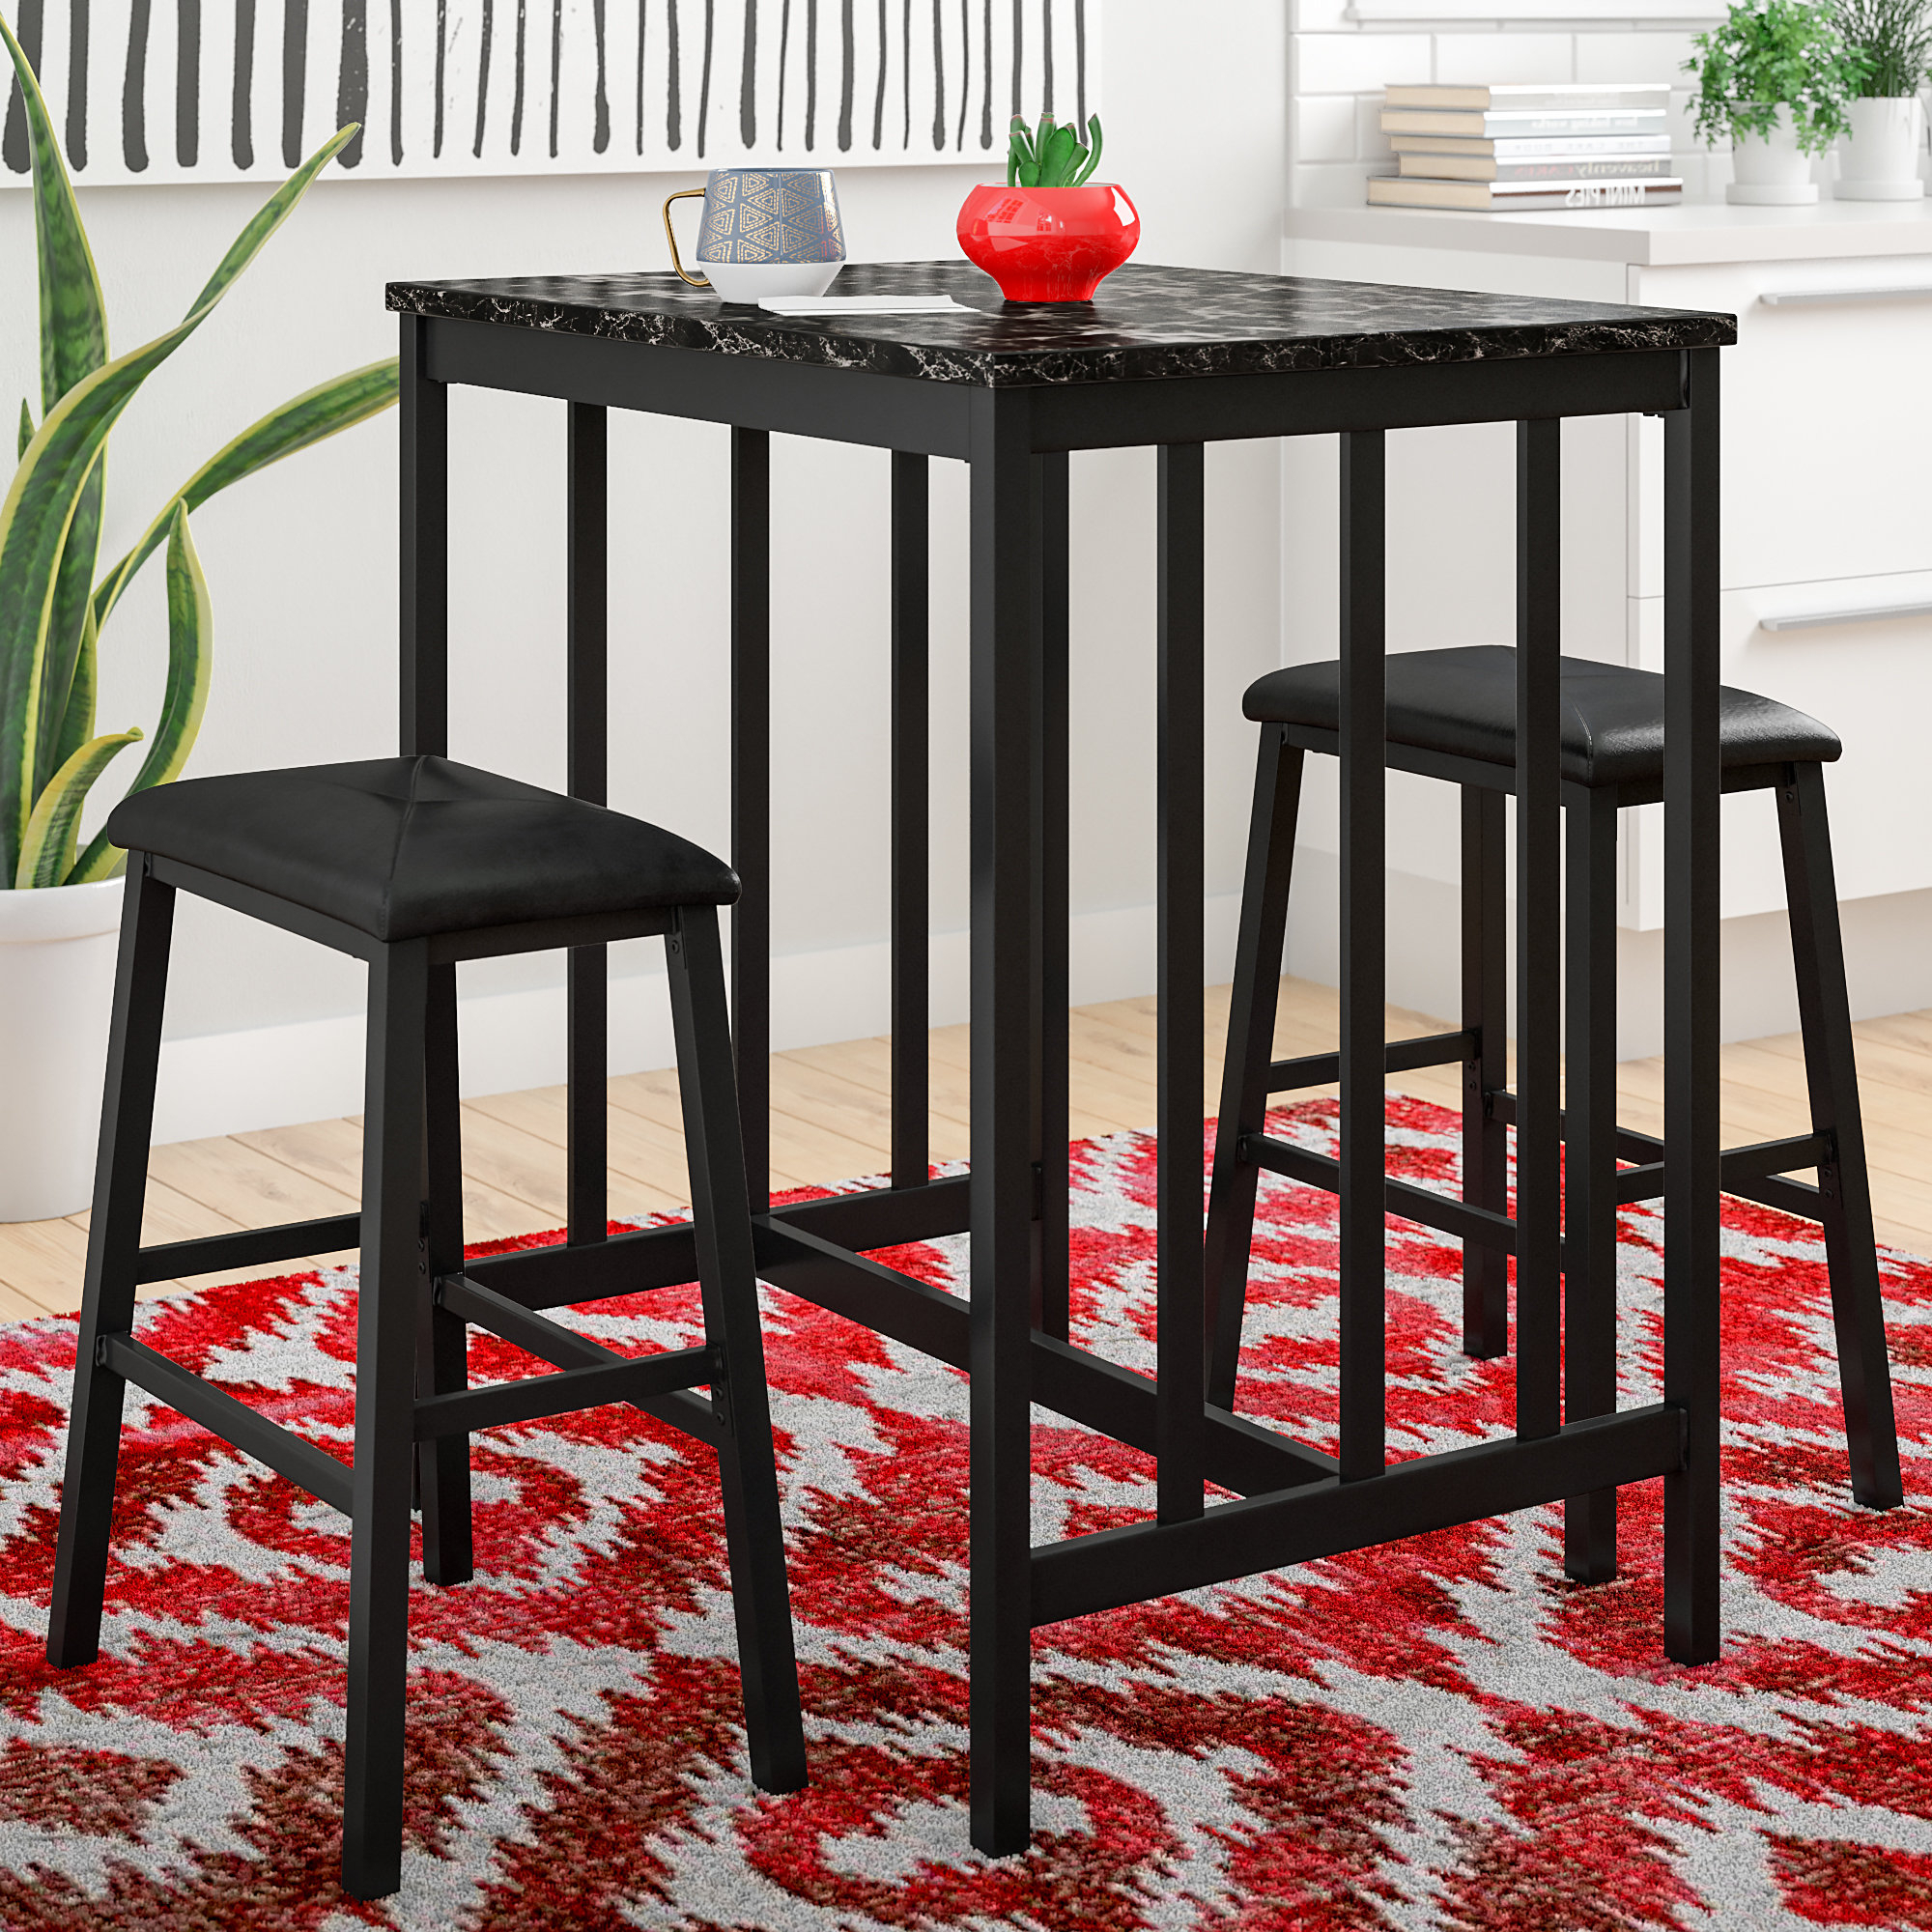 Miskell 3 Piece Dining Sets Pertaining To 2017 Della 3 Piece Pub Table Set (View 5 of 20)